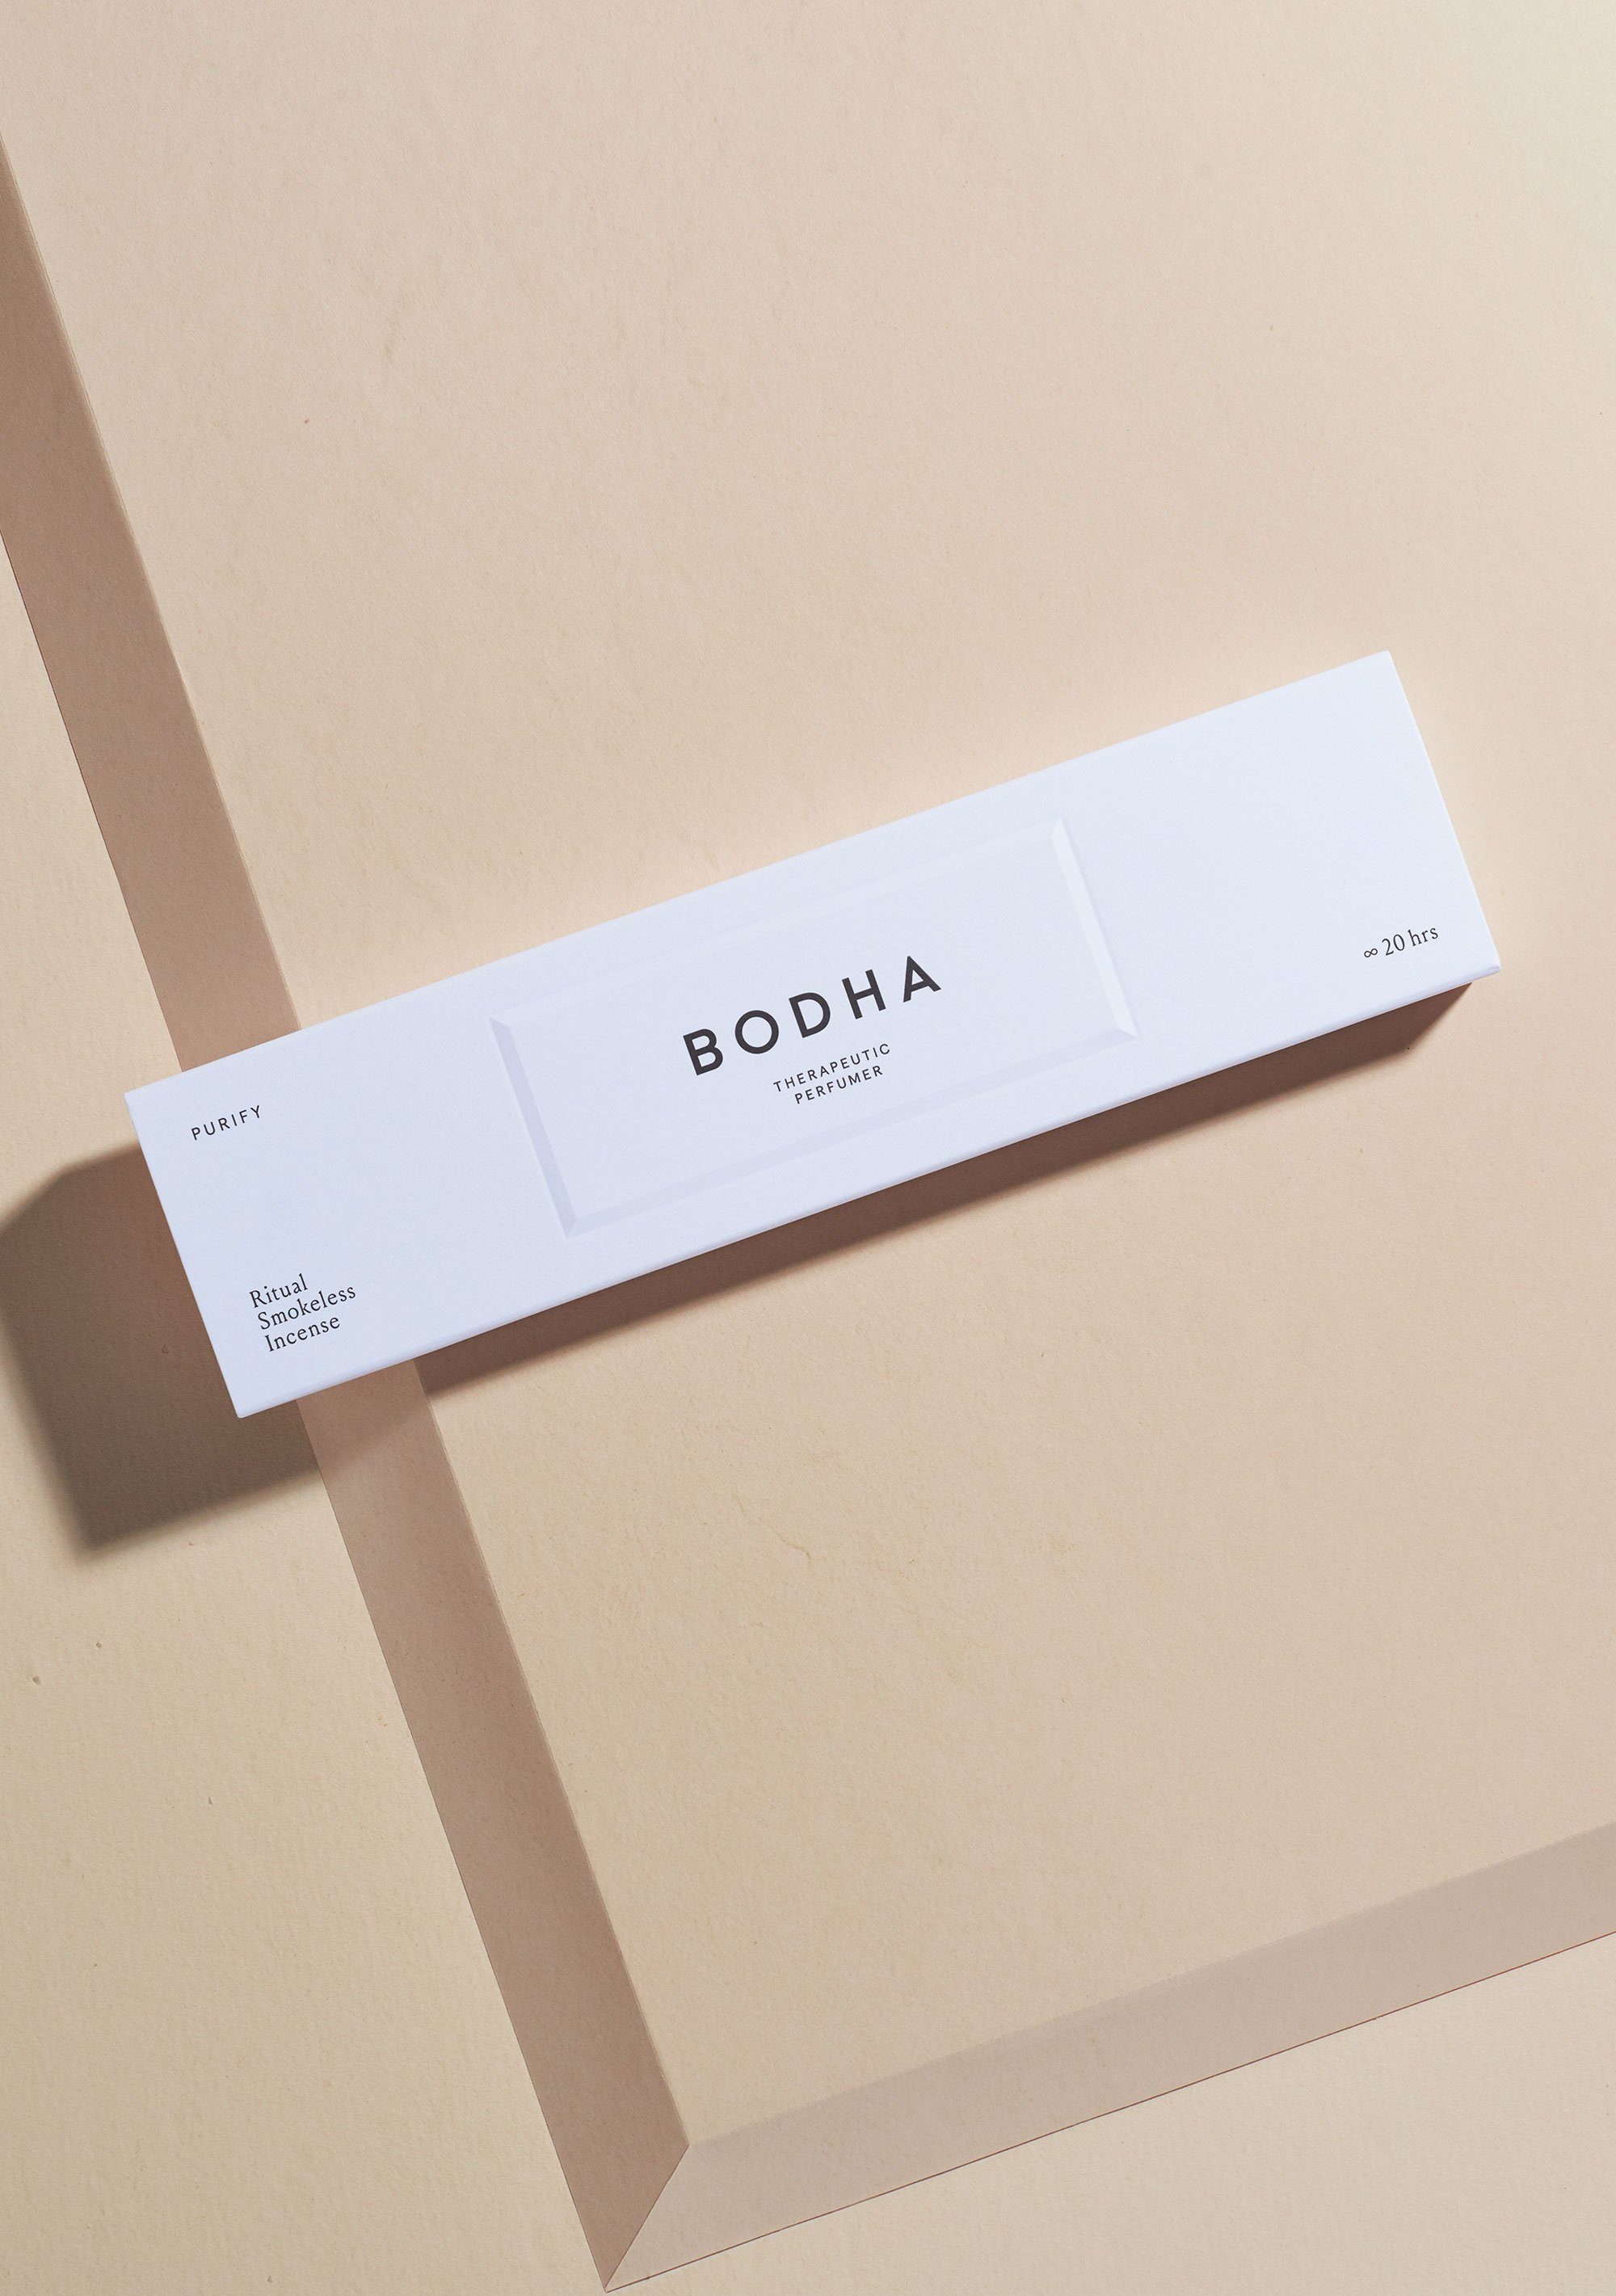 Bodha Ritual Purify Incense